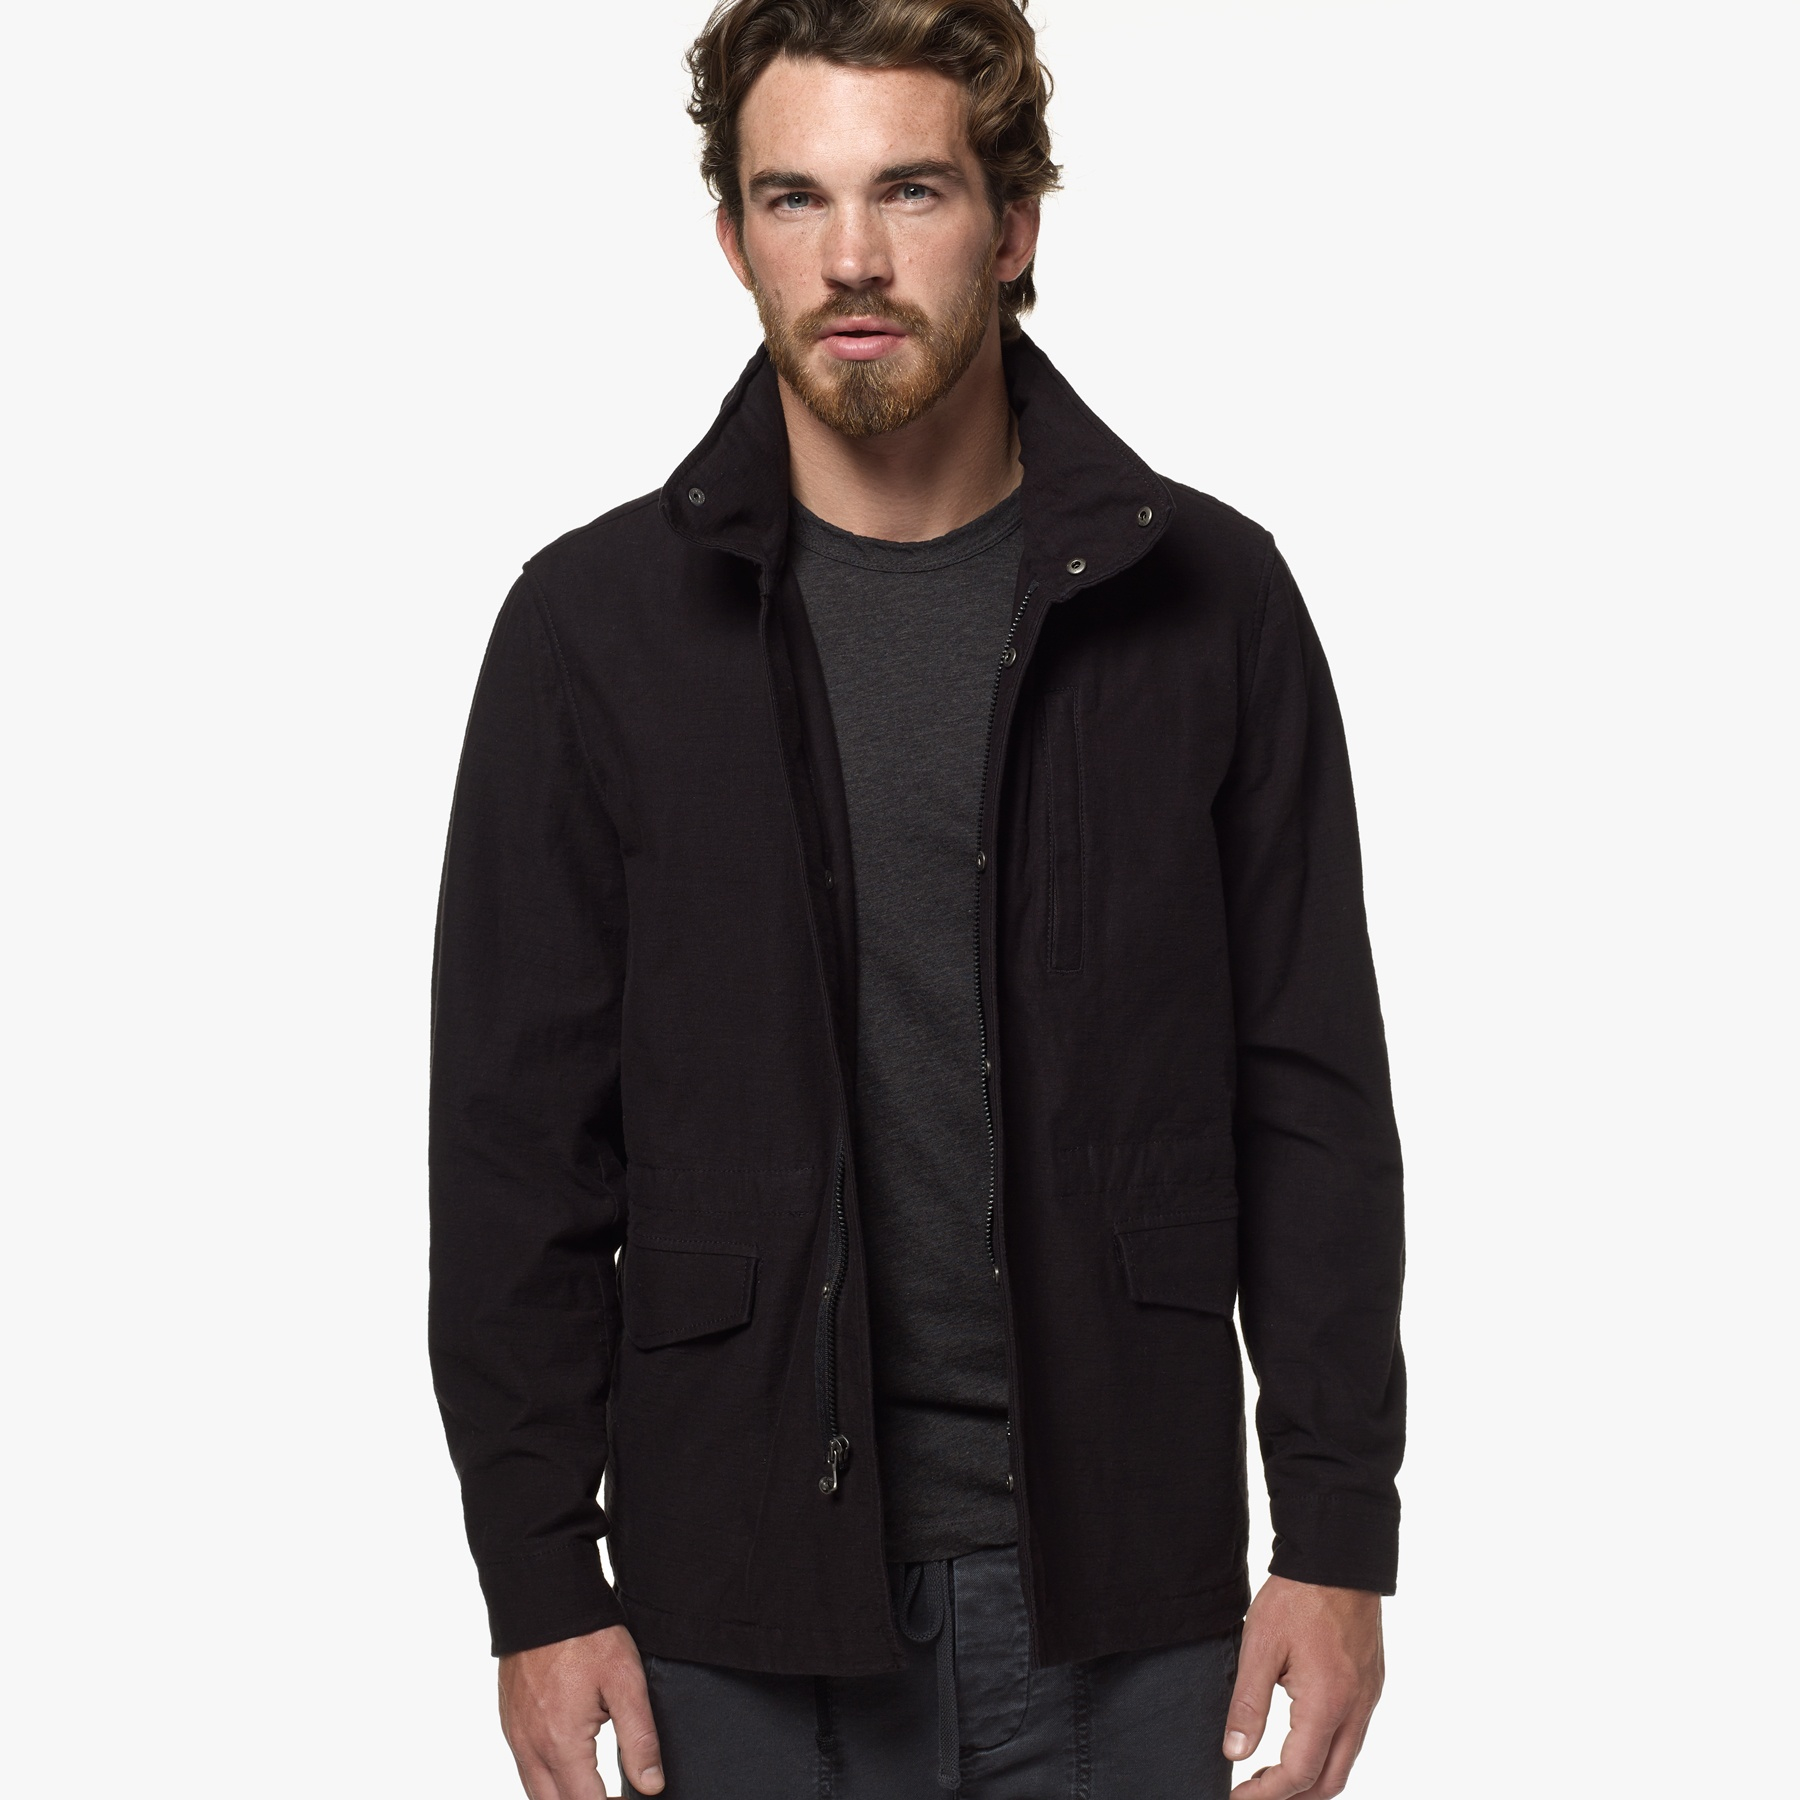 saint james city black single men Jackets : free shipping on orders over $45 at overstockcom - your online jackets store get 5% in rewards with club o.